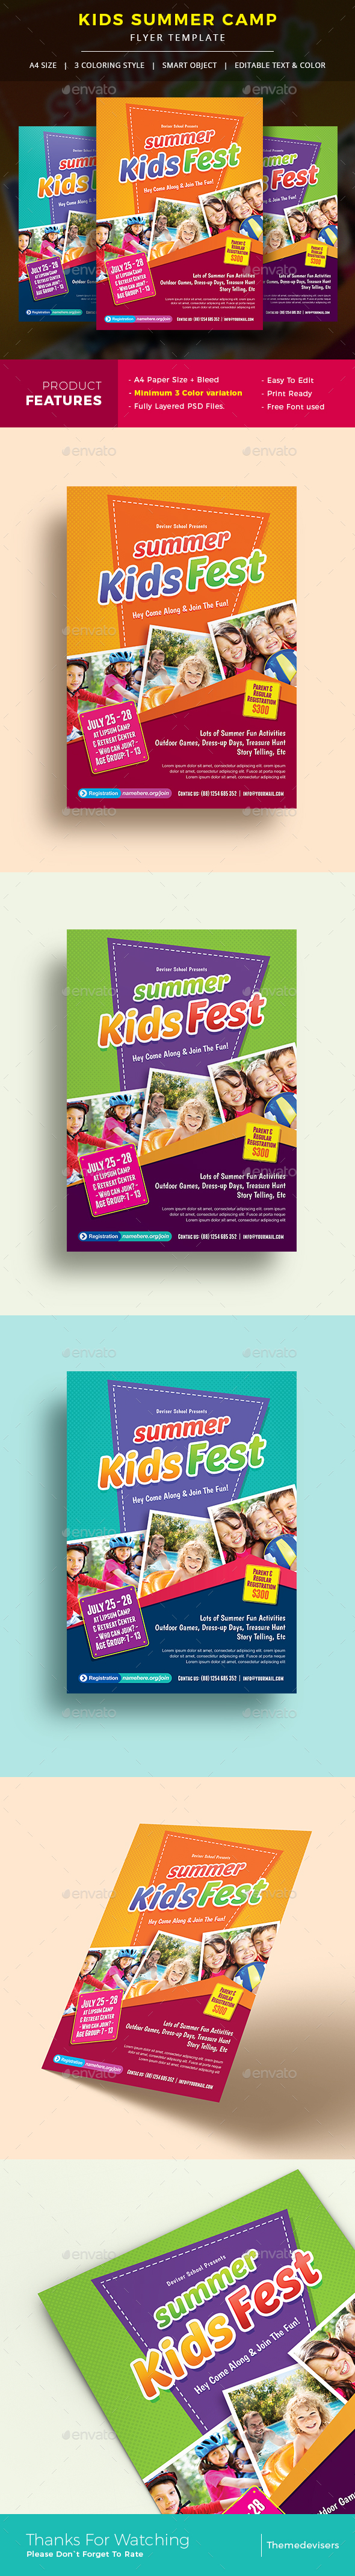 Kids Summer Camp Flyer - Corporate Flyers